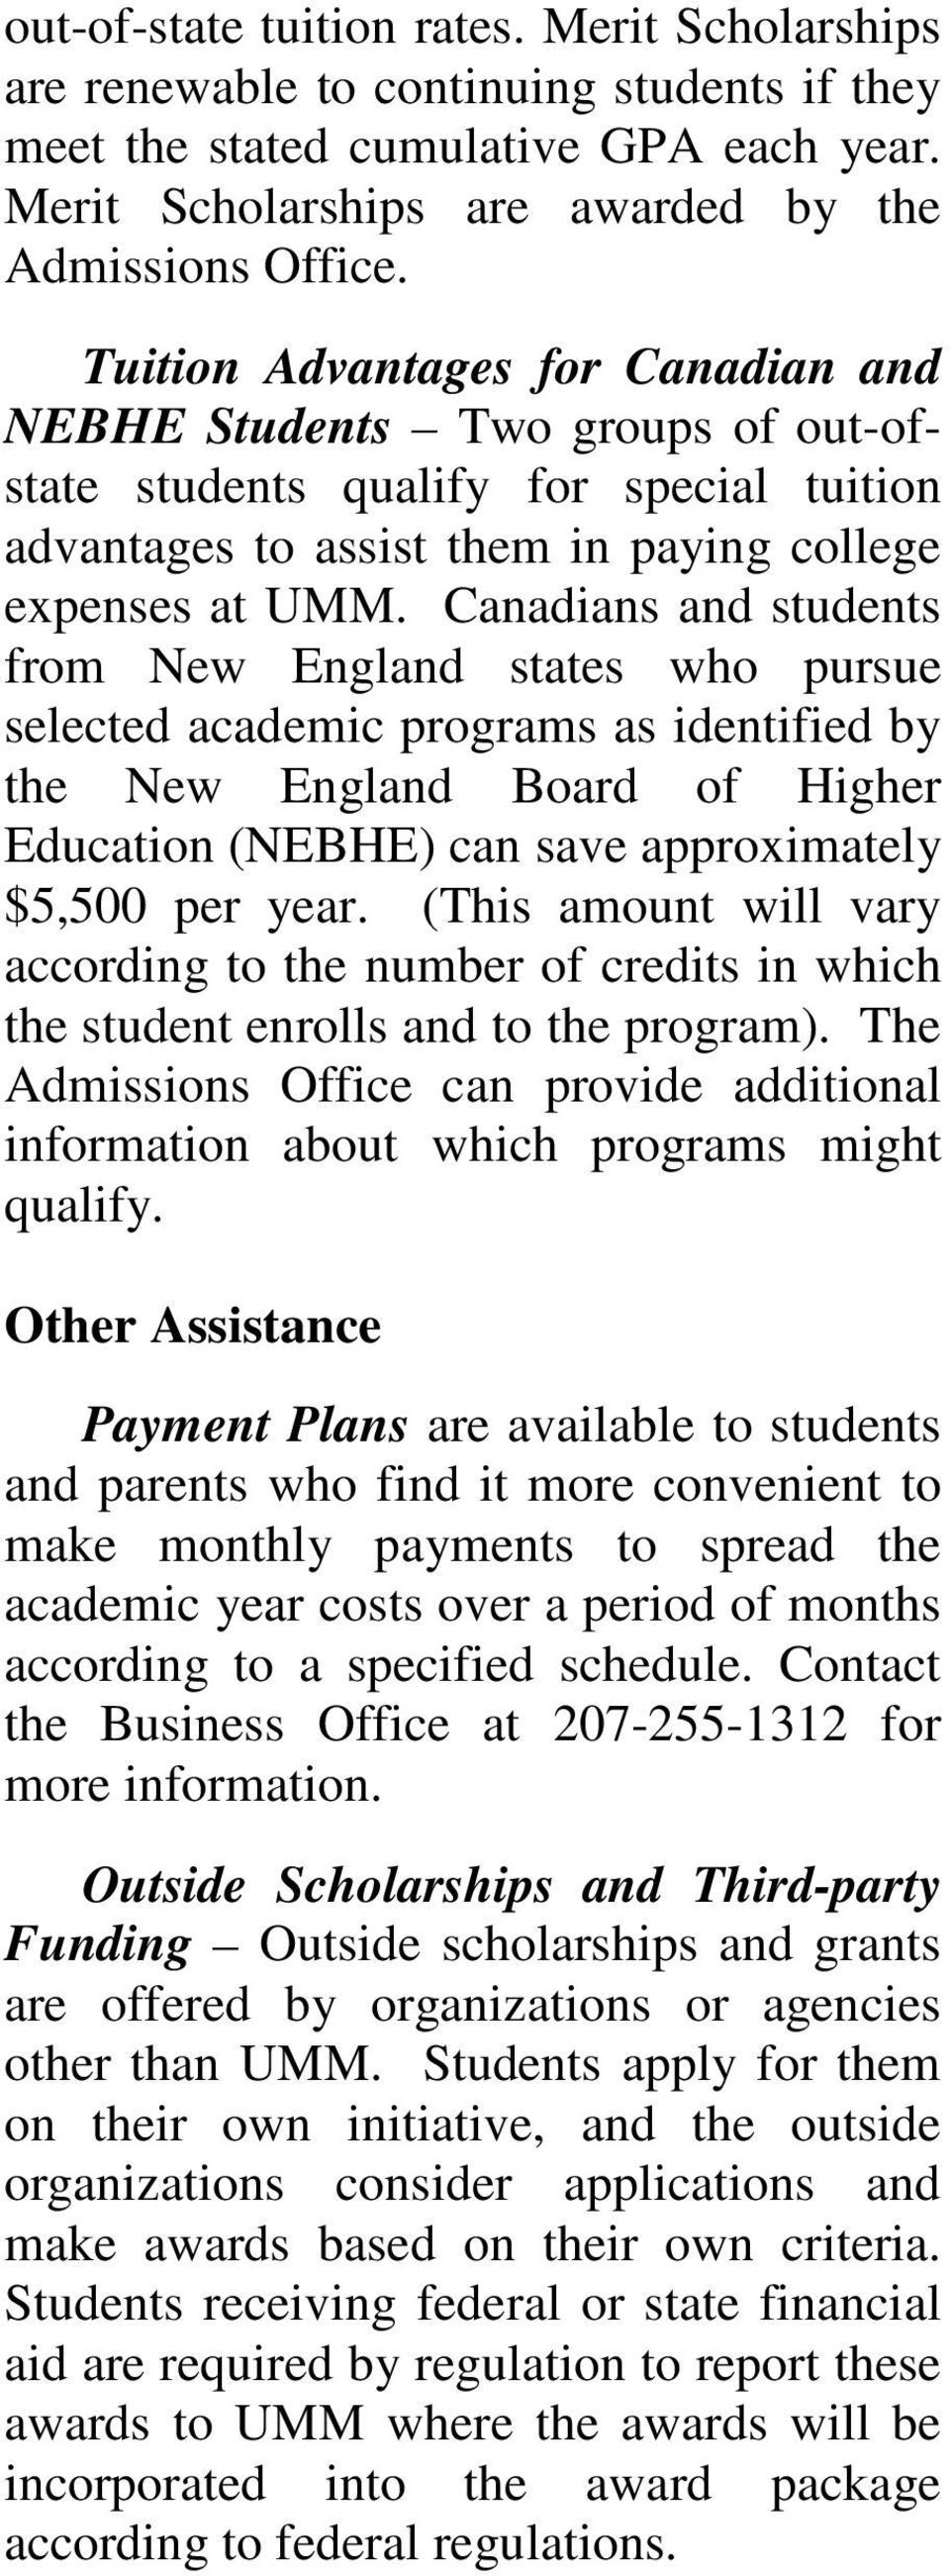 Canadians and students from New England states who pursue selected academic programs as identified by the New England Board of Higher Education (NEBHE) can save approximately $5,500 per year.